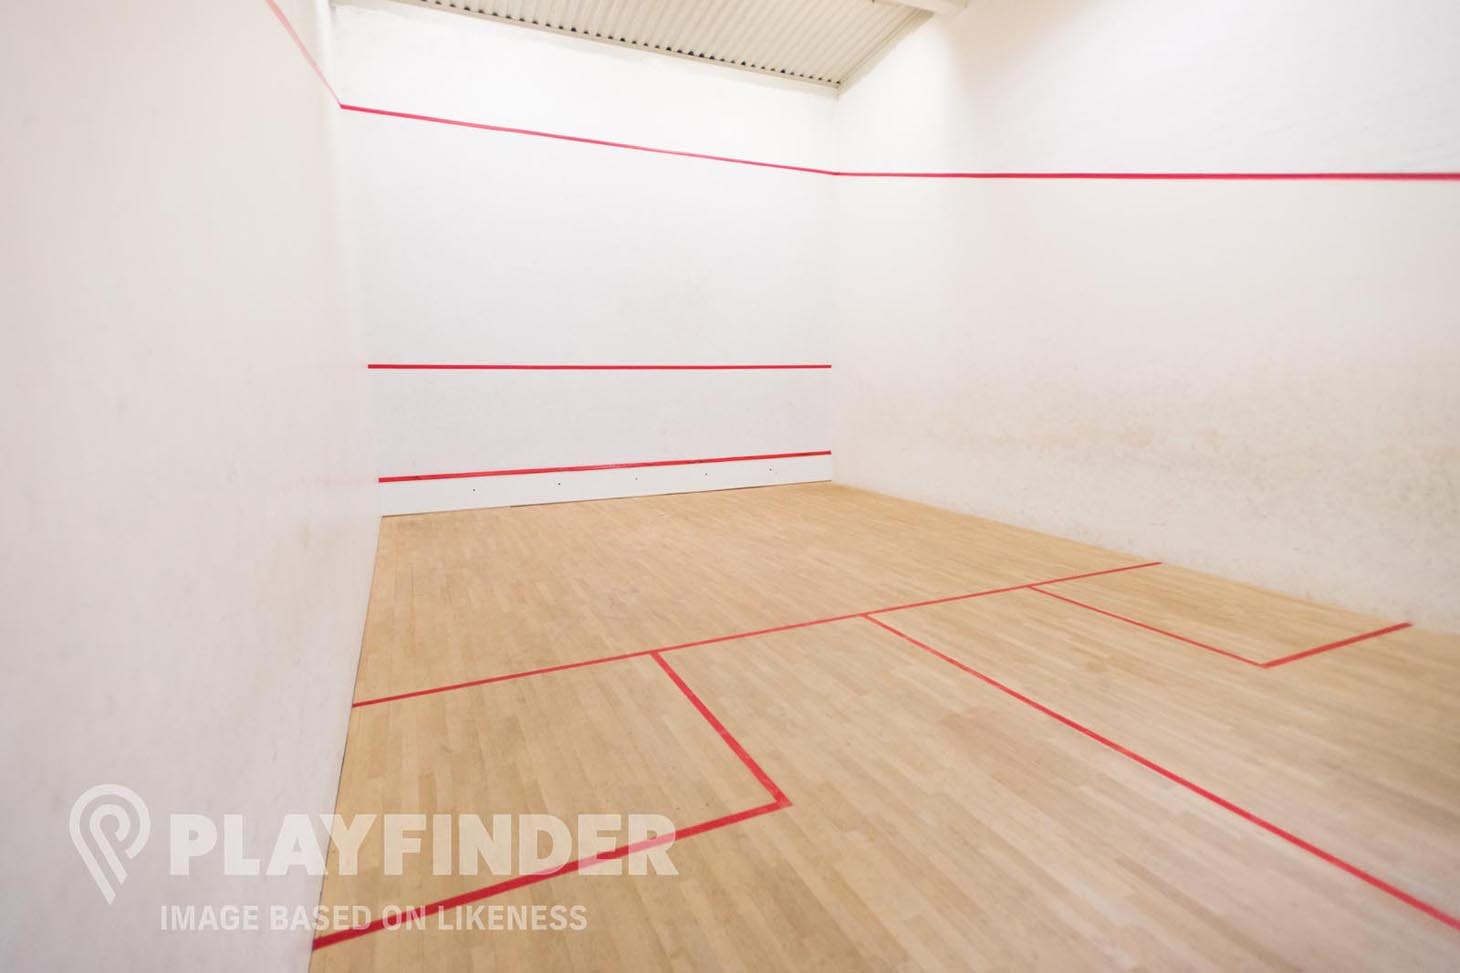 Coral Health & Fitness Indoor | Hard squash court